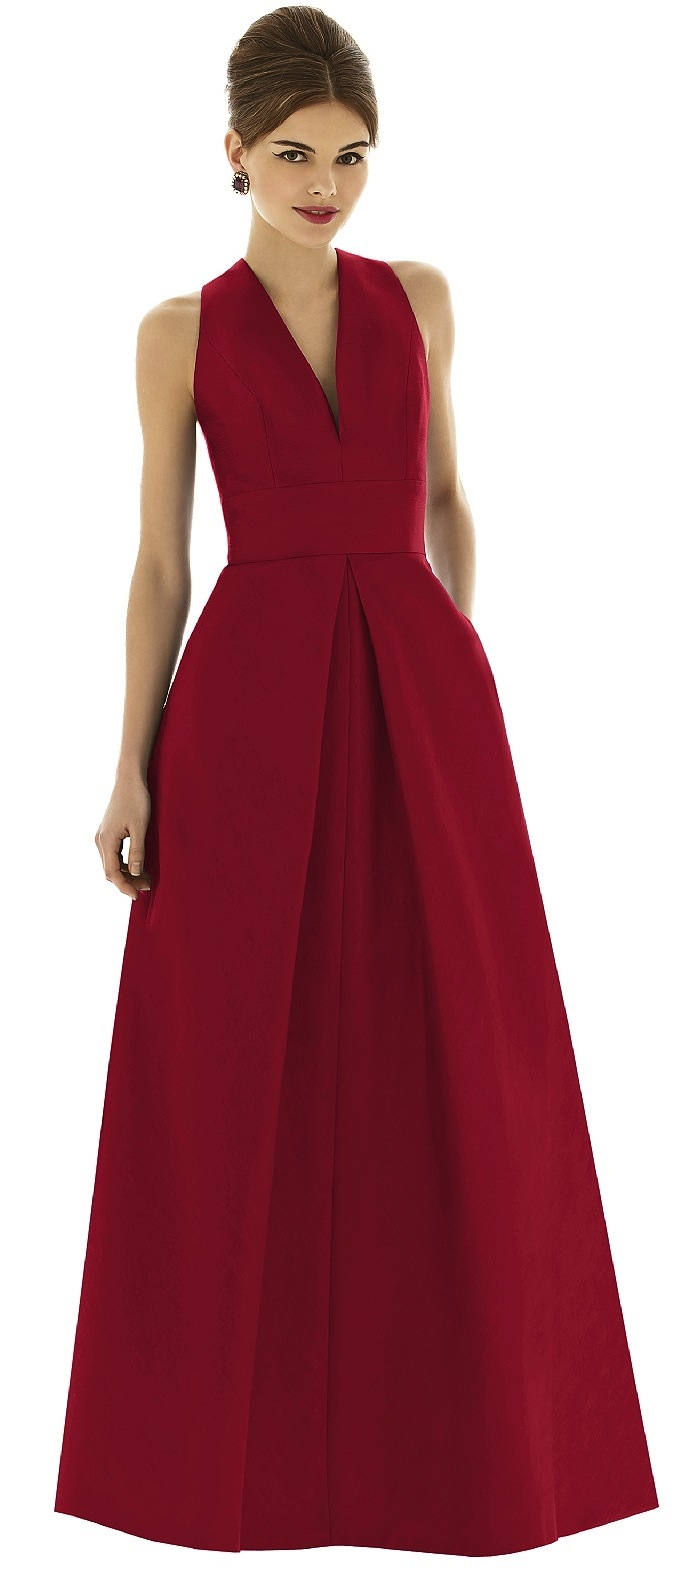 Alfred sung bridesmaid dressesalfred sung dresses d 611the dessy alfred sung bridesmaid dresses alfred sung d611 loading zoom ombrellifo Choice Image